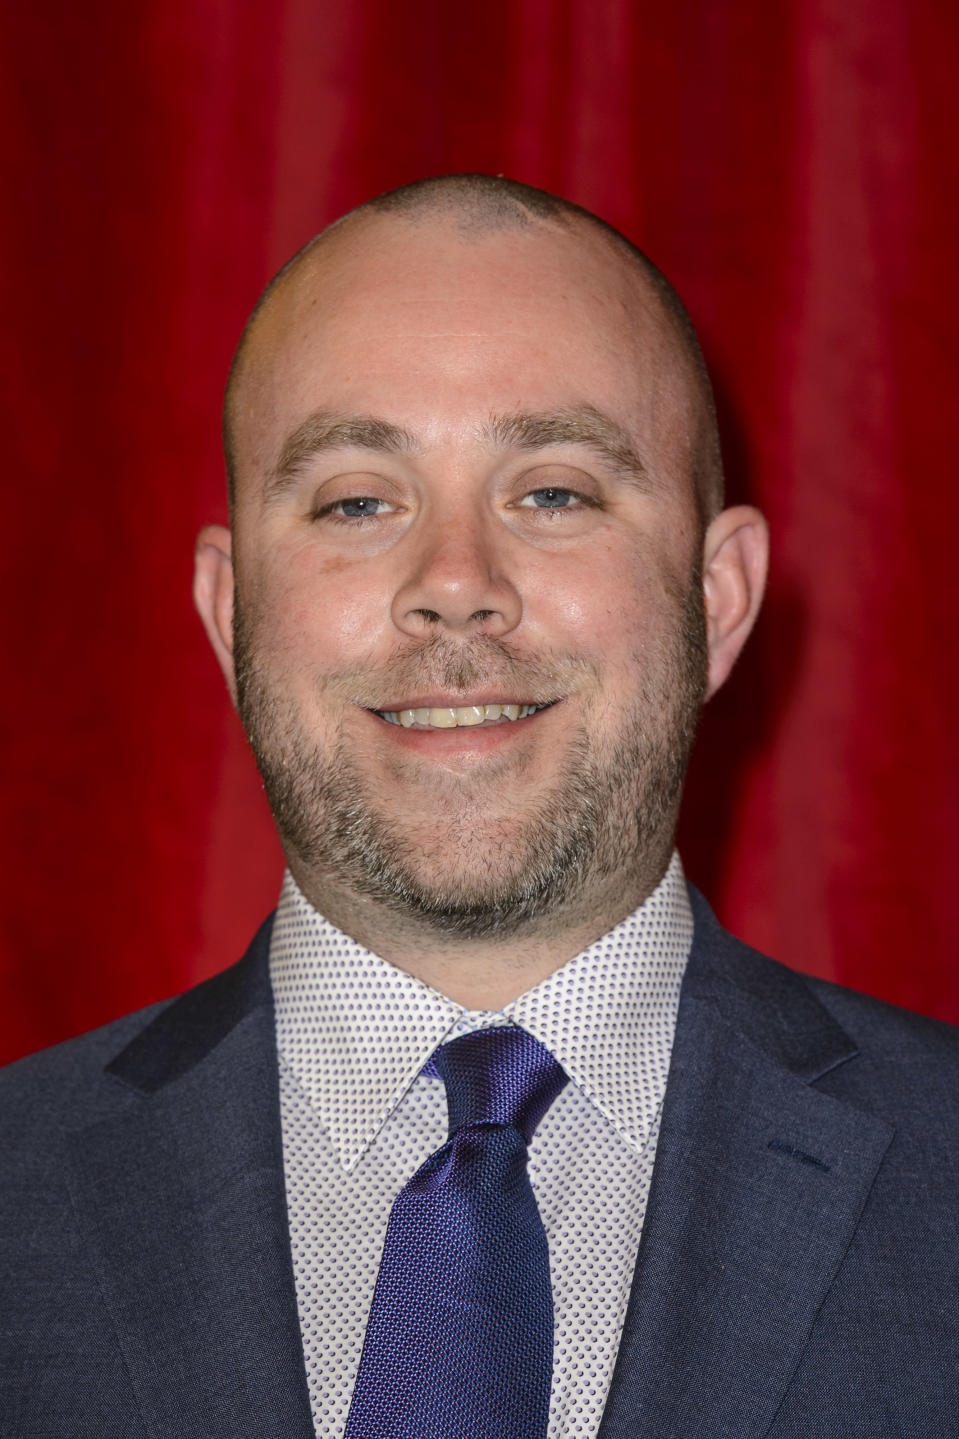 Iain MacLeod attending the British Soap Awards 2016 at the Hackney Empire, 291 Mare St, London. PRESS ASSOCIATION Photo. Picture date: Saturday May 28, 2016. See PA Story SHOWBIZ Soap. Photo credit should read: Matt Crossick/PA Wire